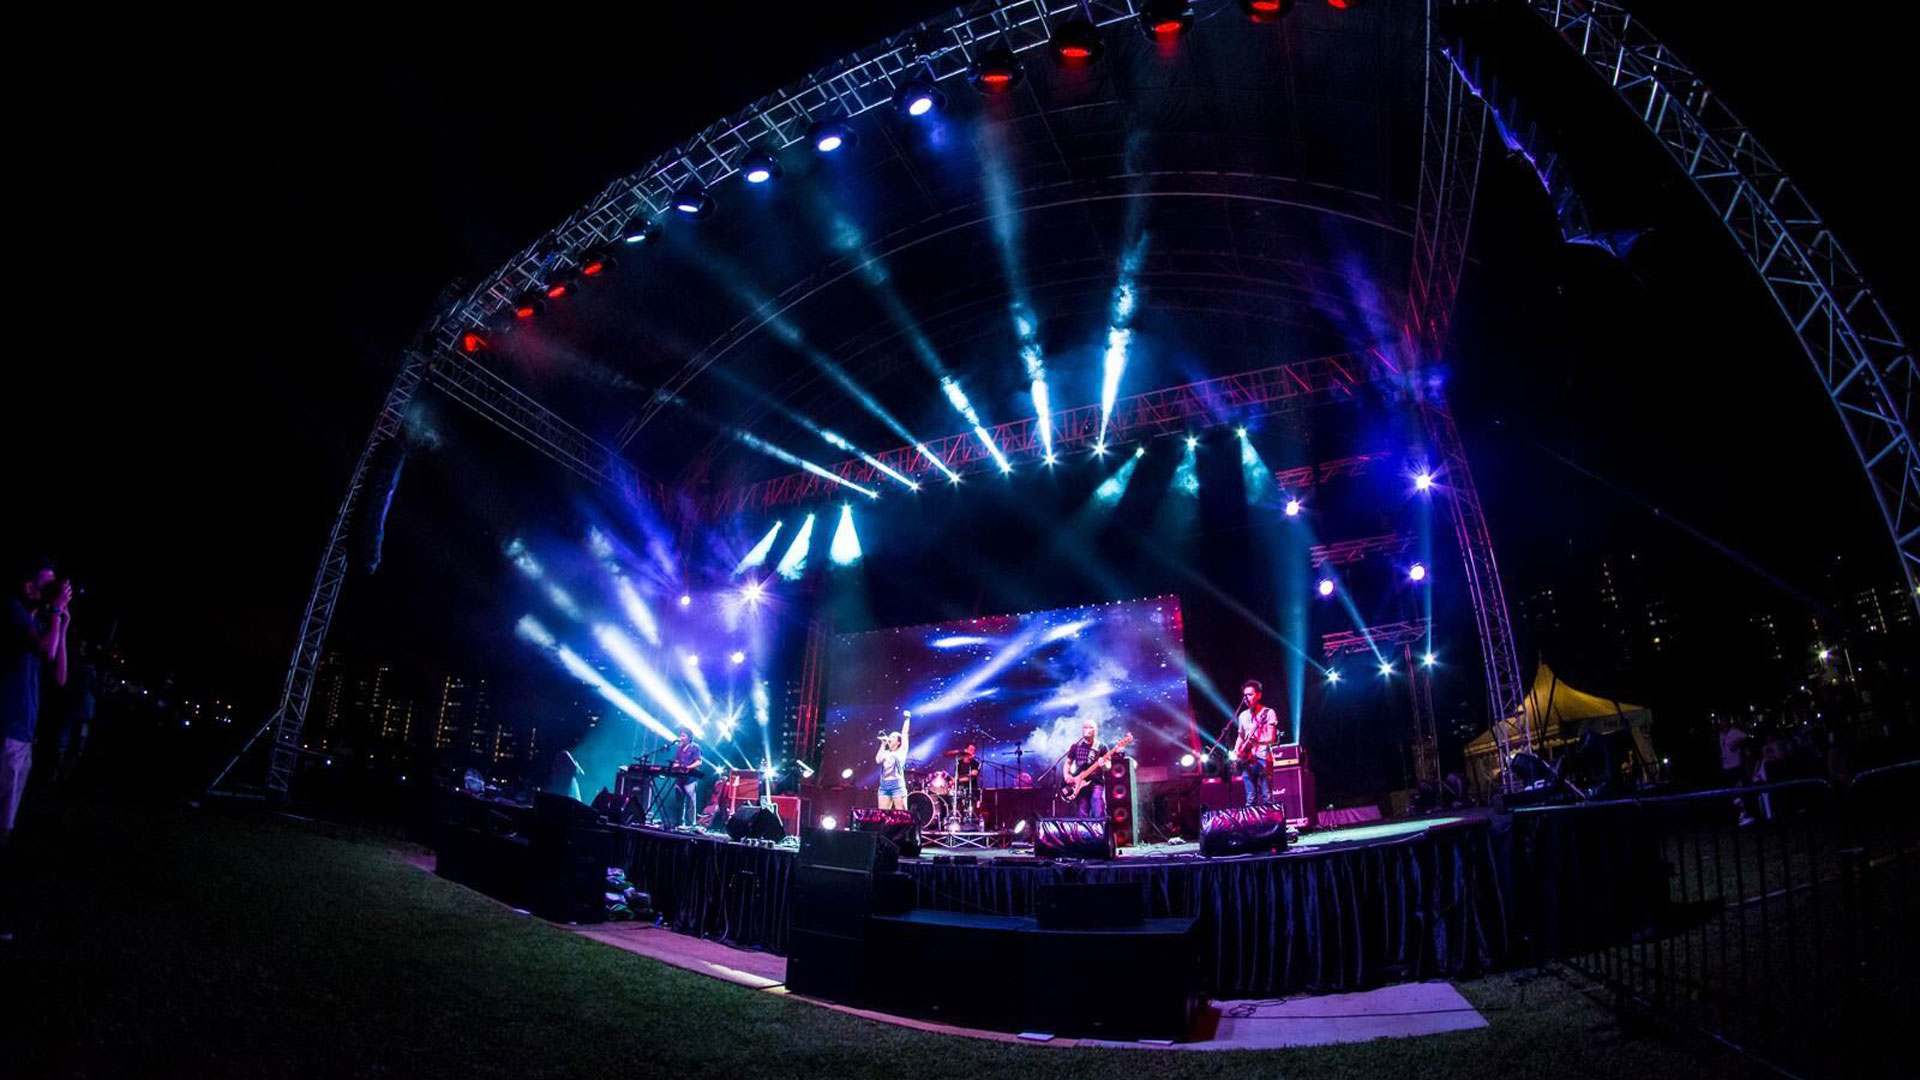 LianTronics Rental LED Display Lights up Stage, Singapore